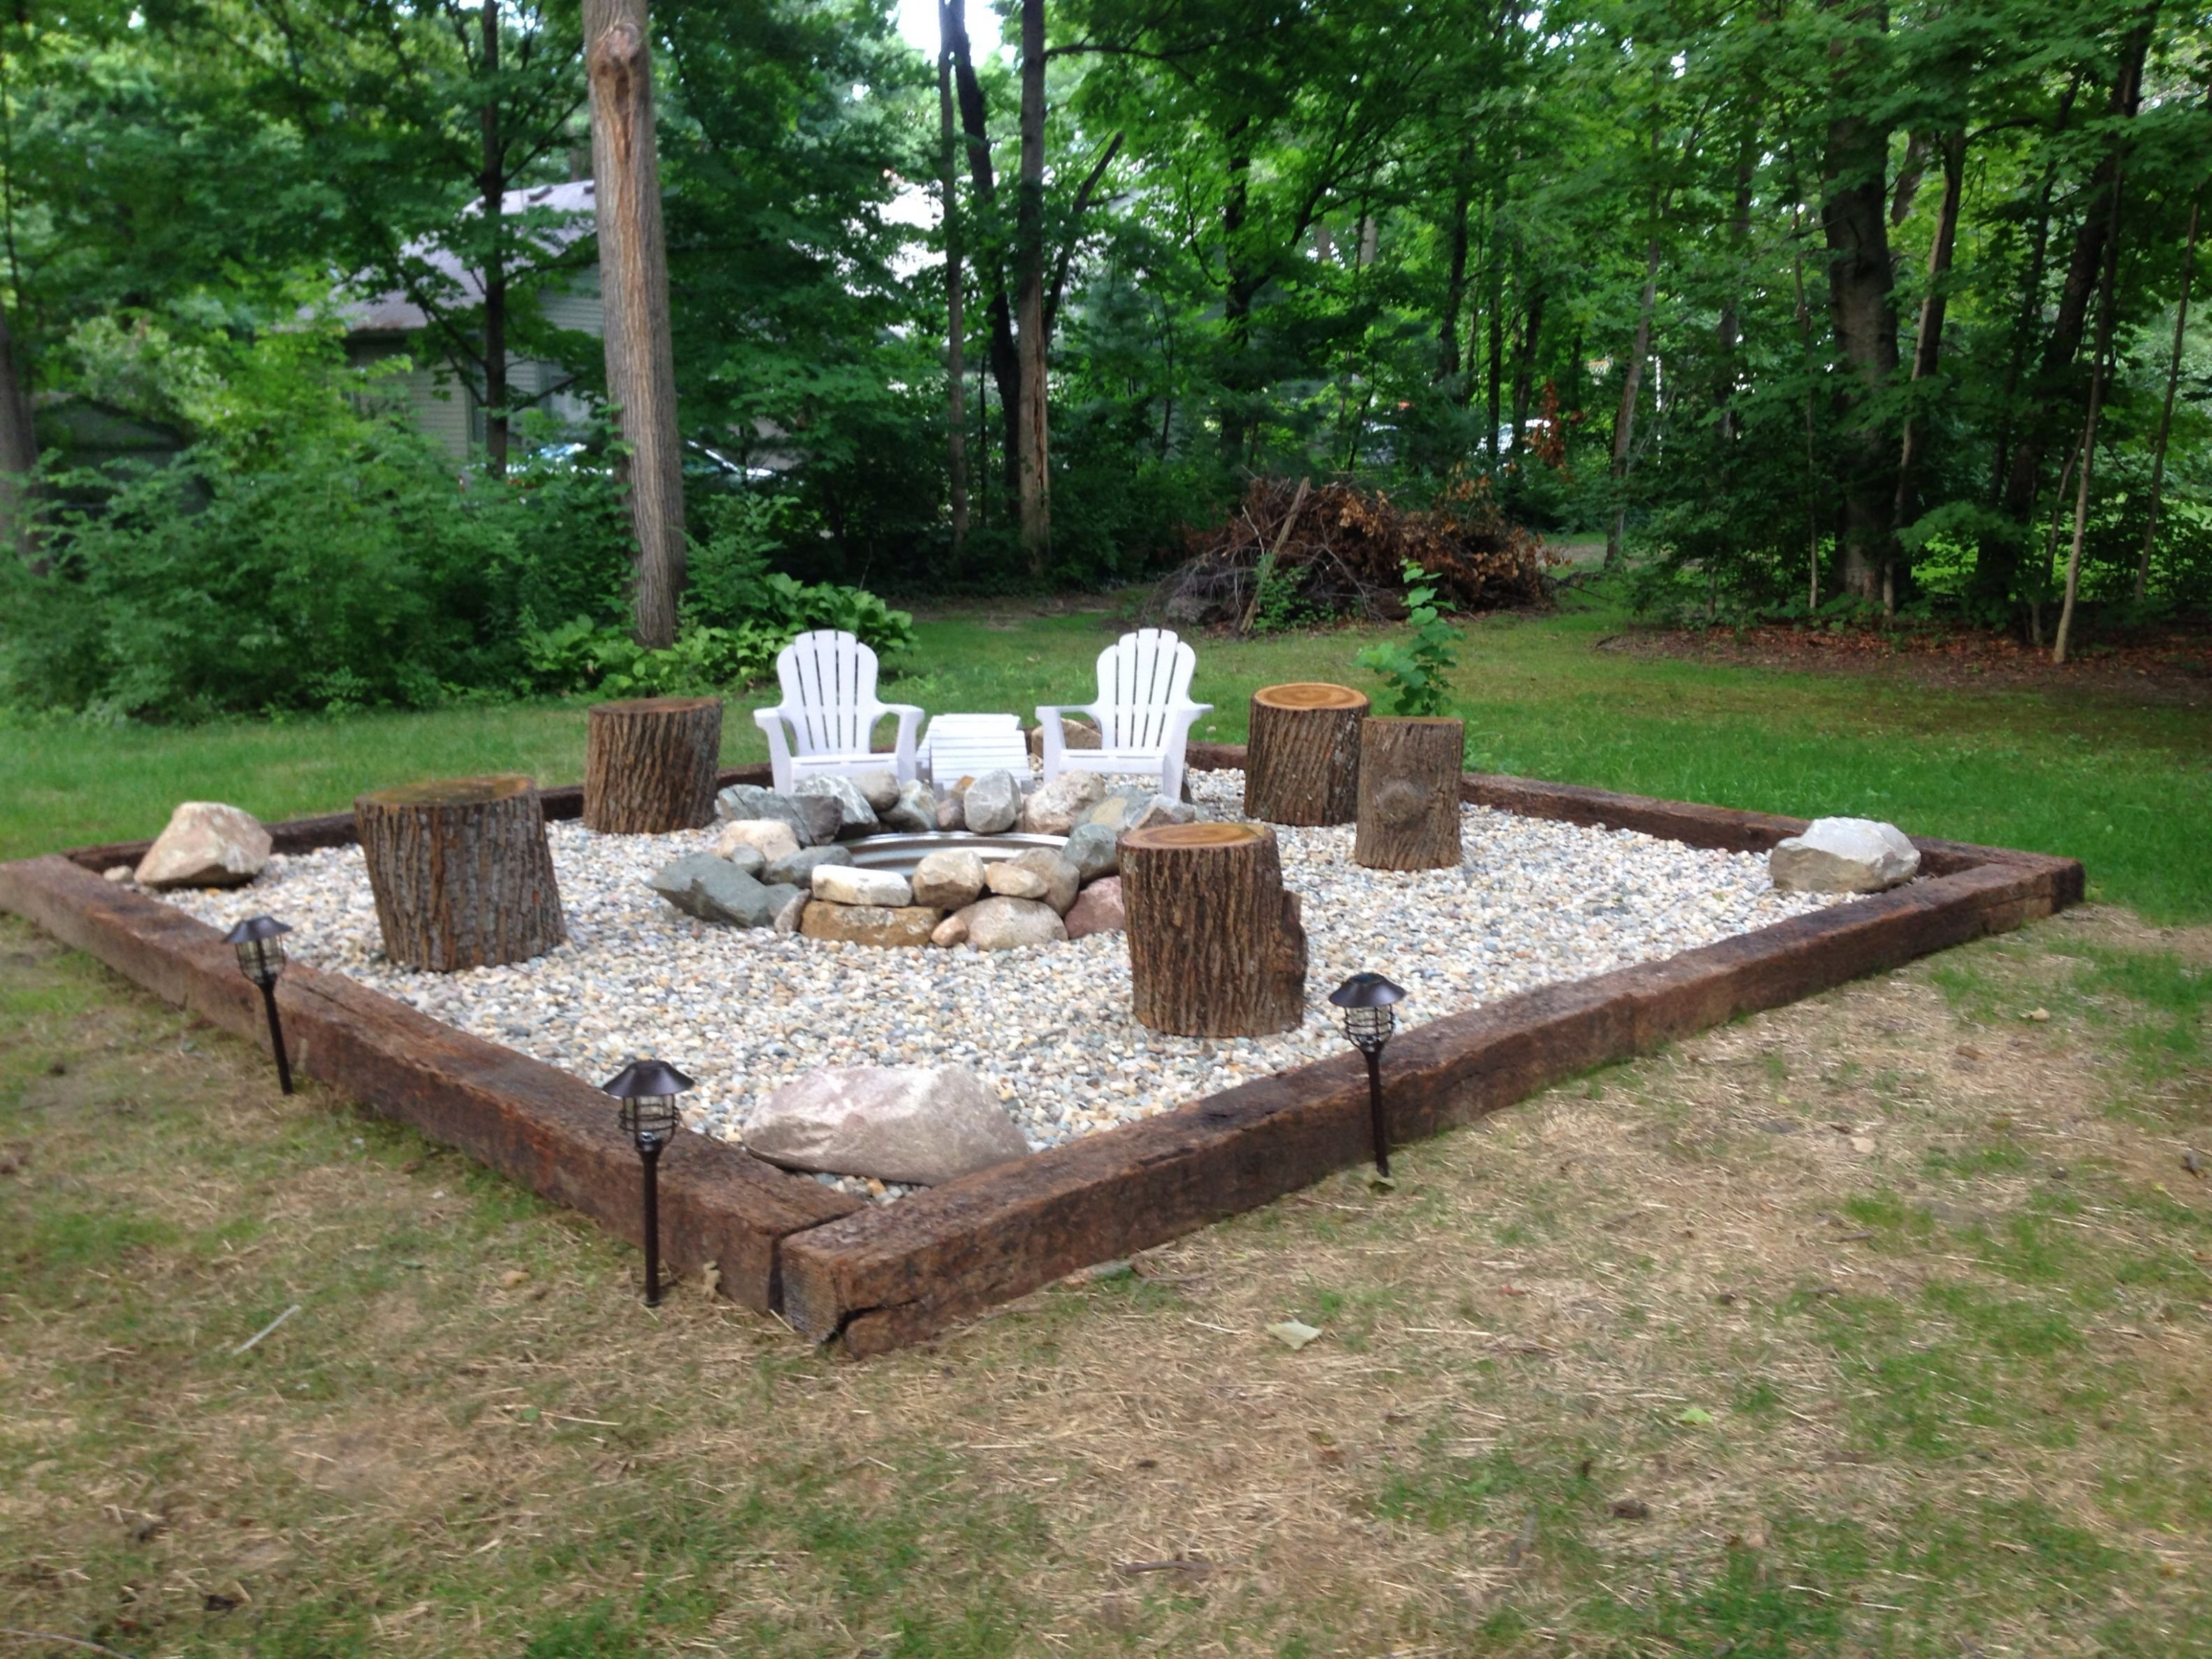 10 Fashionable Homemade Outdoor Fire Pit Ideas 15 outstanding cinder block fire pit design ideas for outdoor fire 3 2021